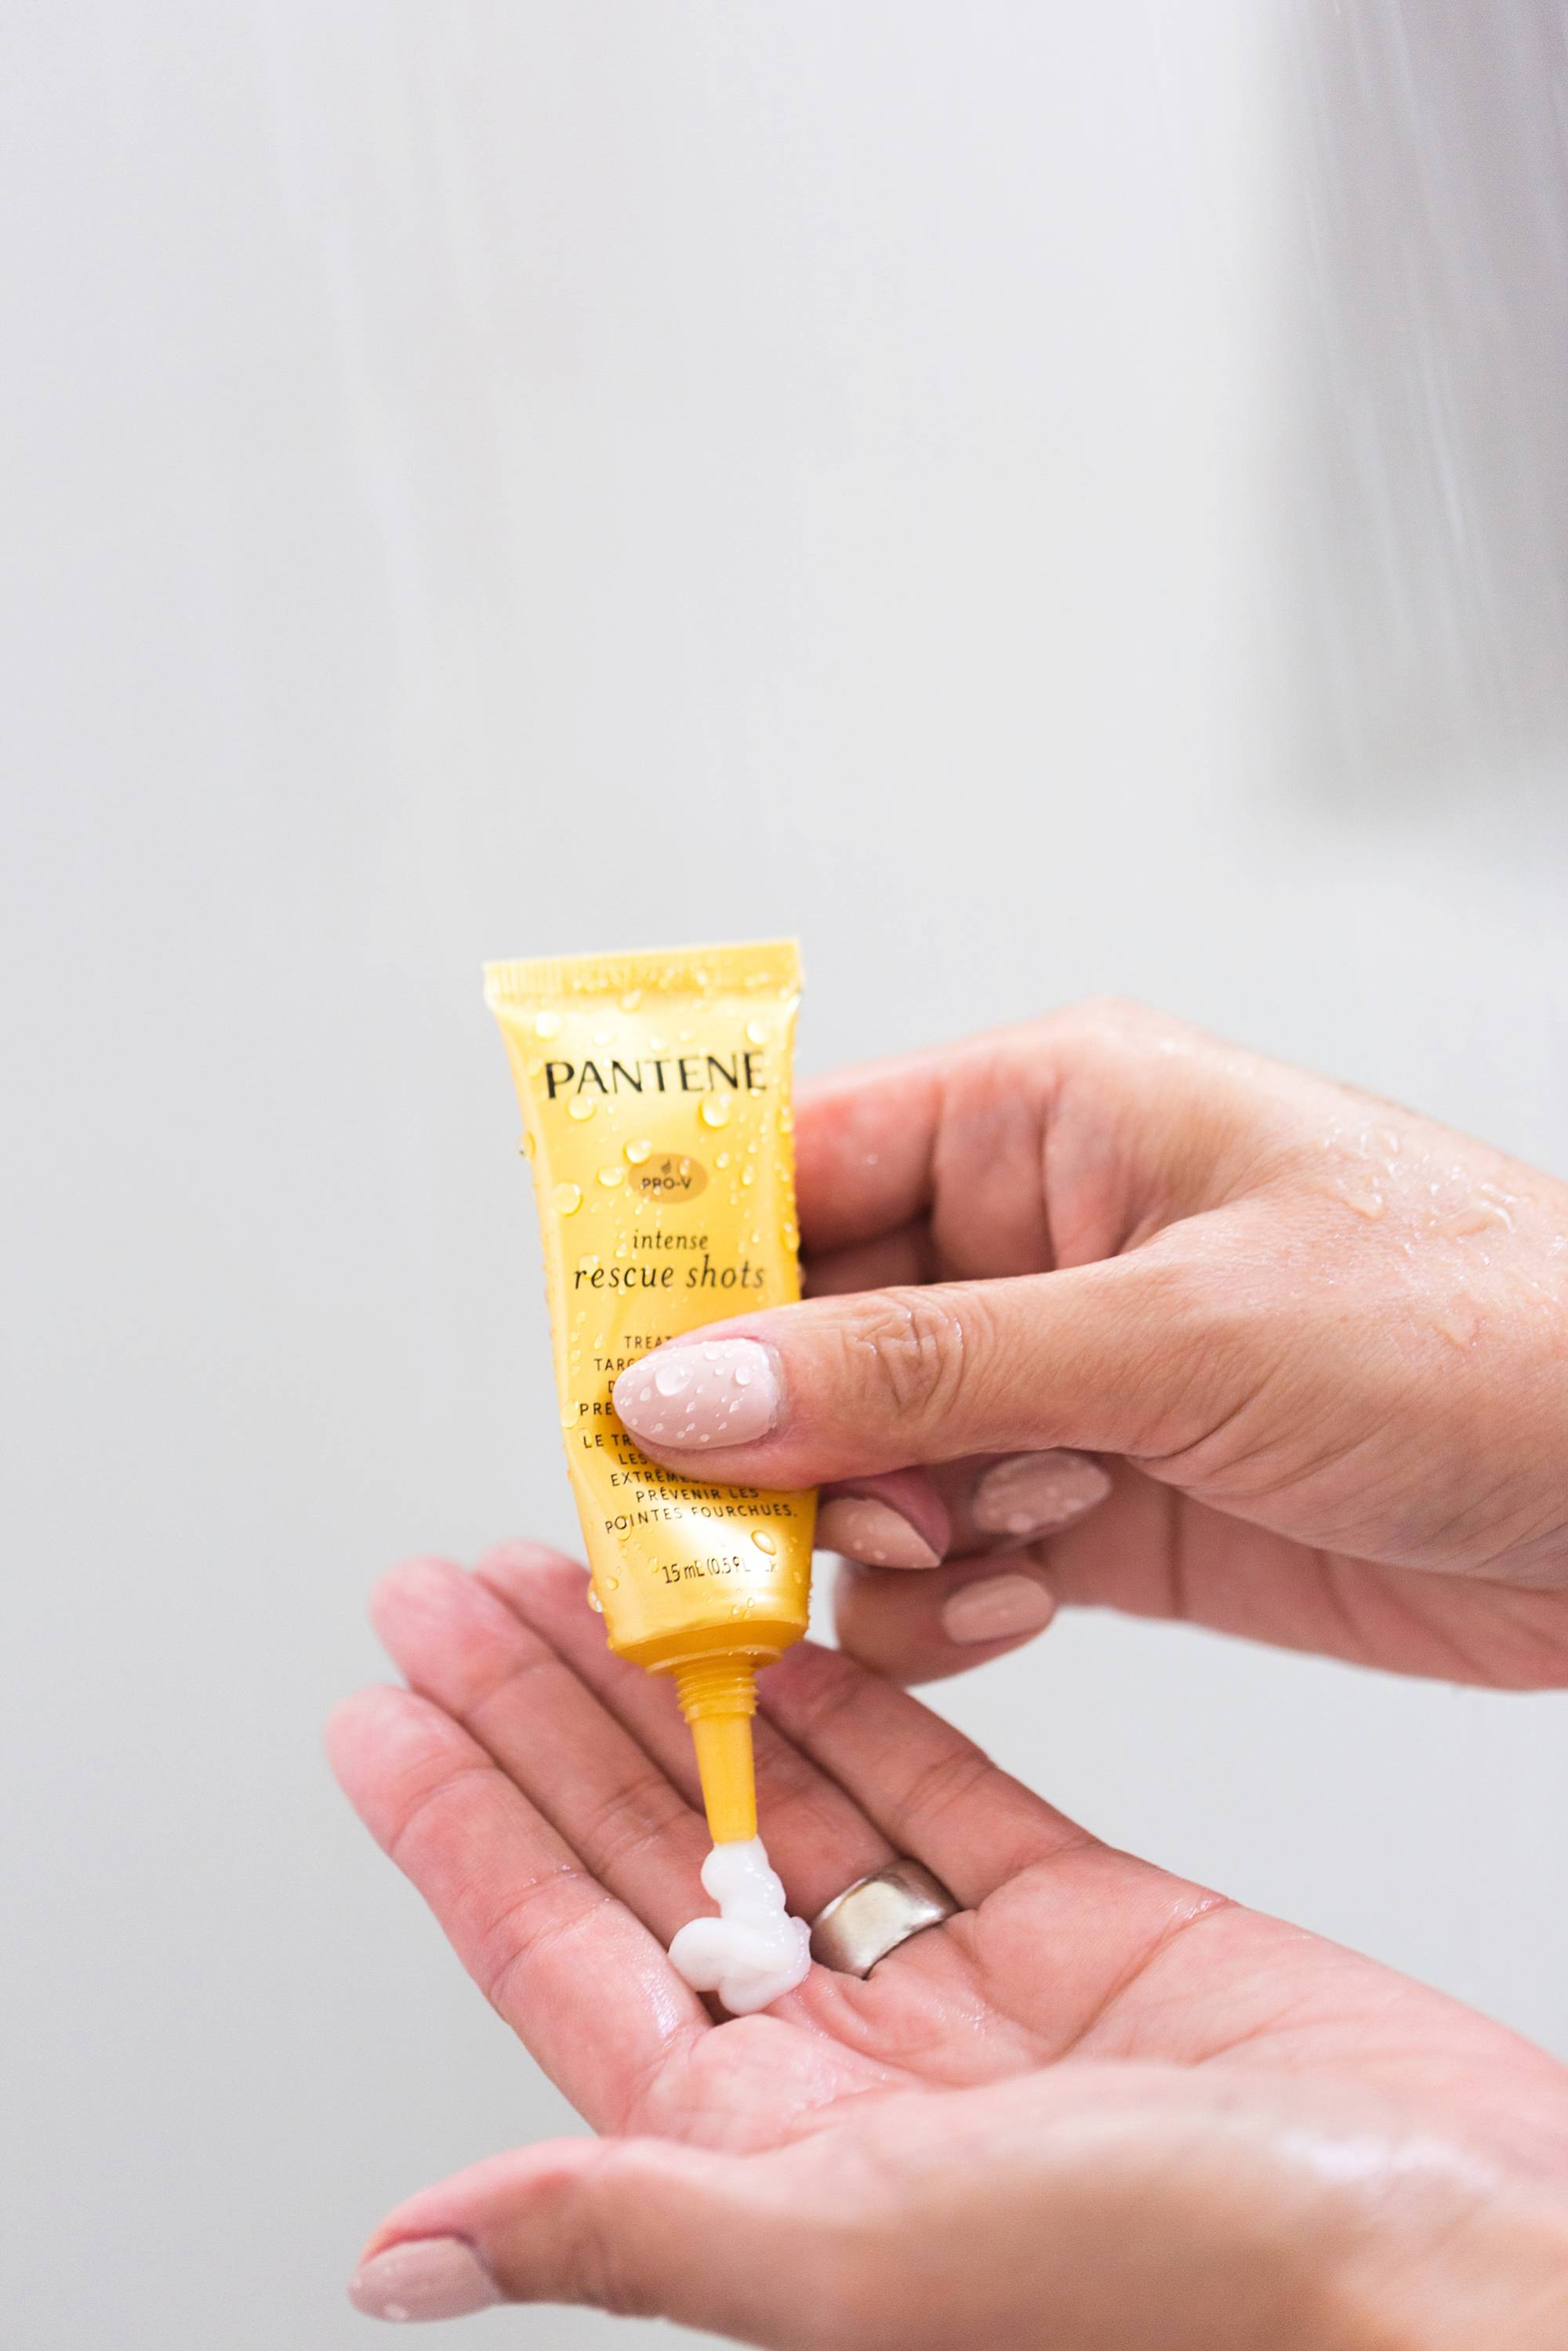 Pantene has new Intense Rescue Shots for great hair only takes 30 seconds!